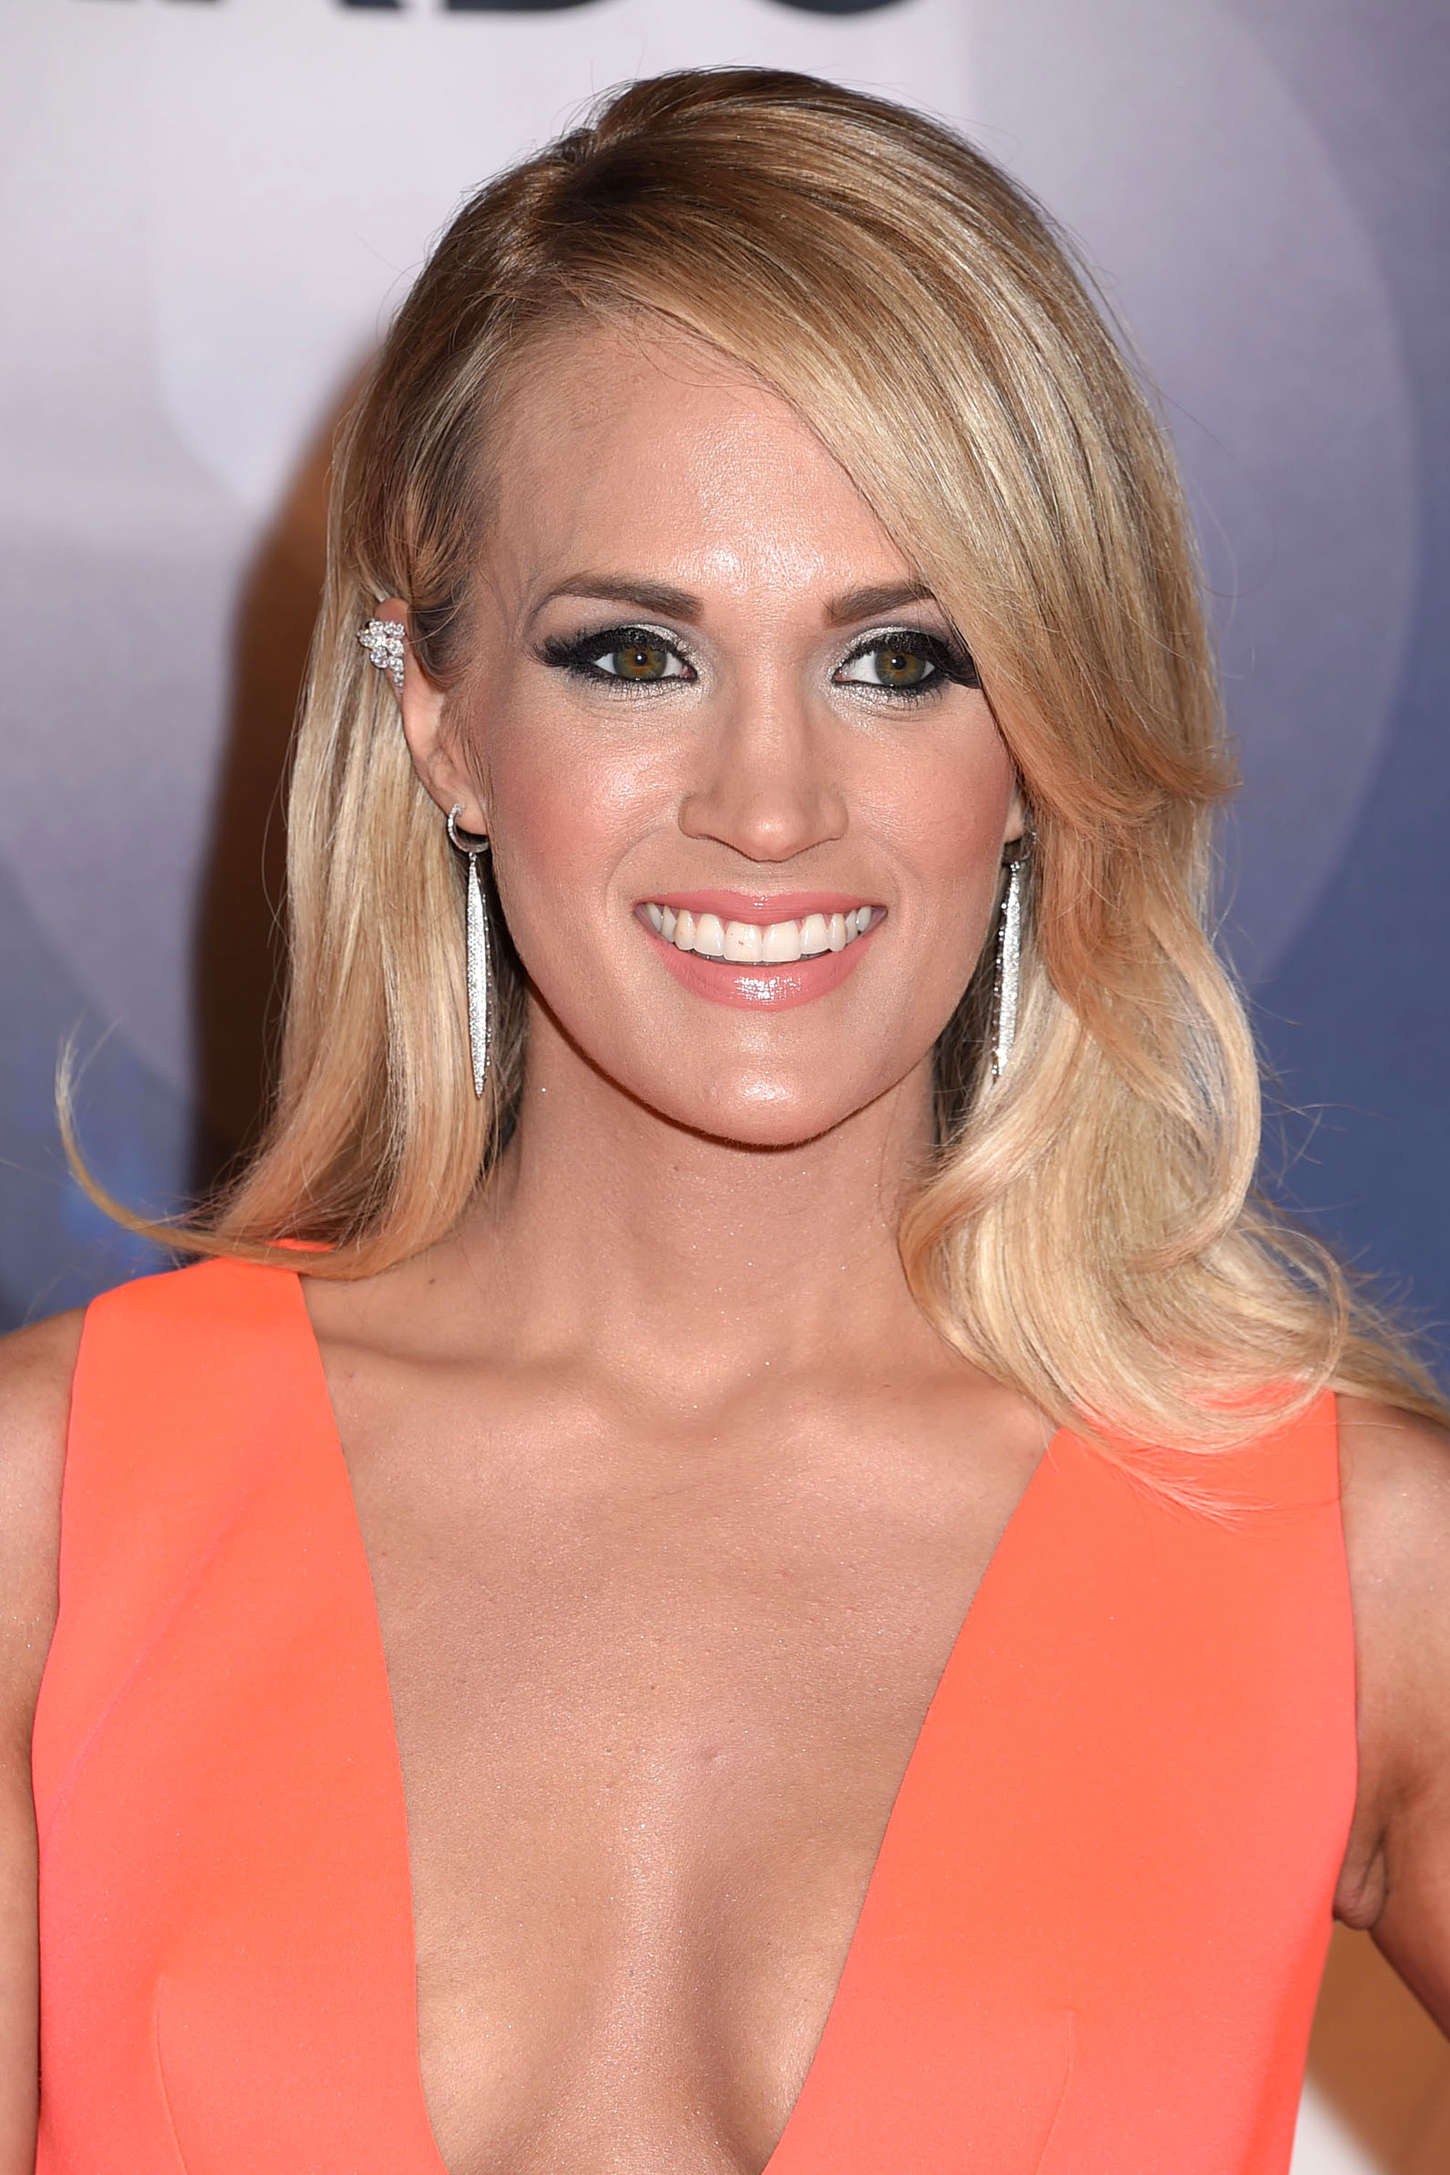 Carrie underwood pussy boobs -